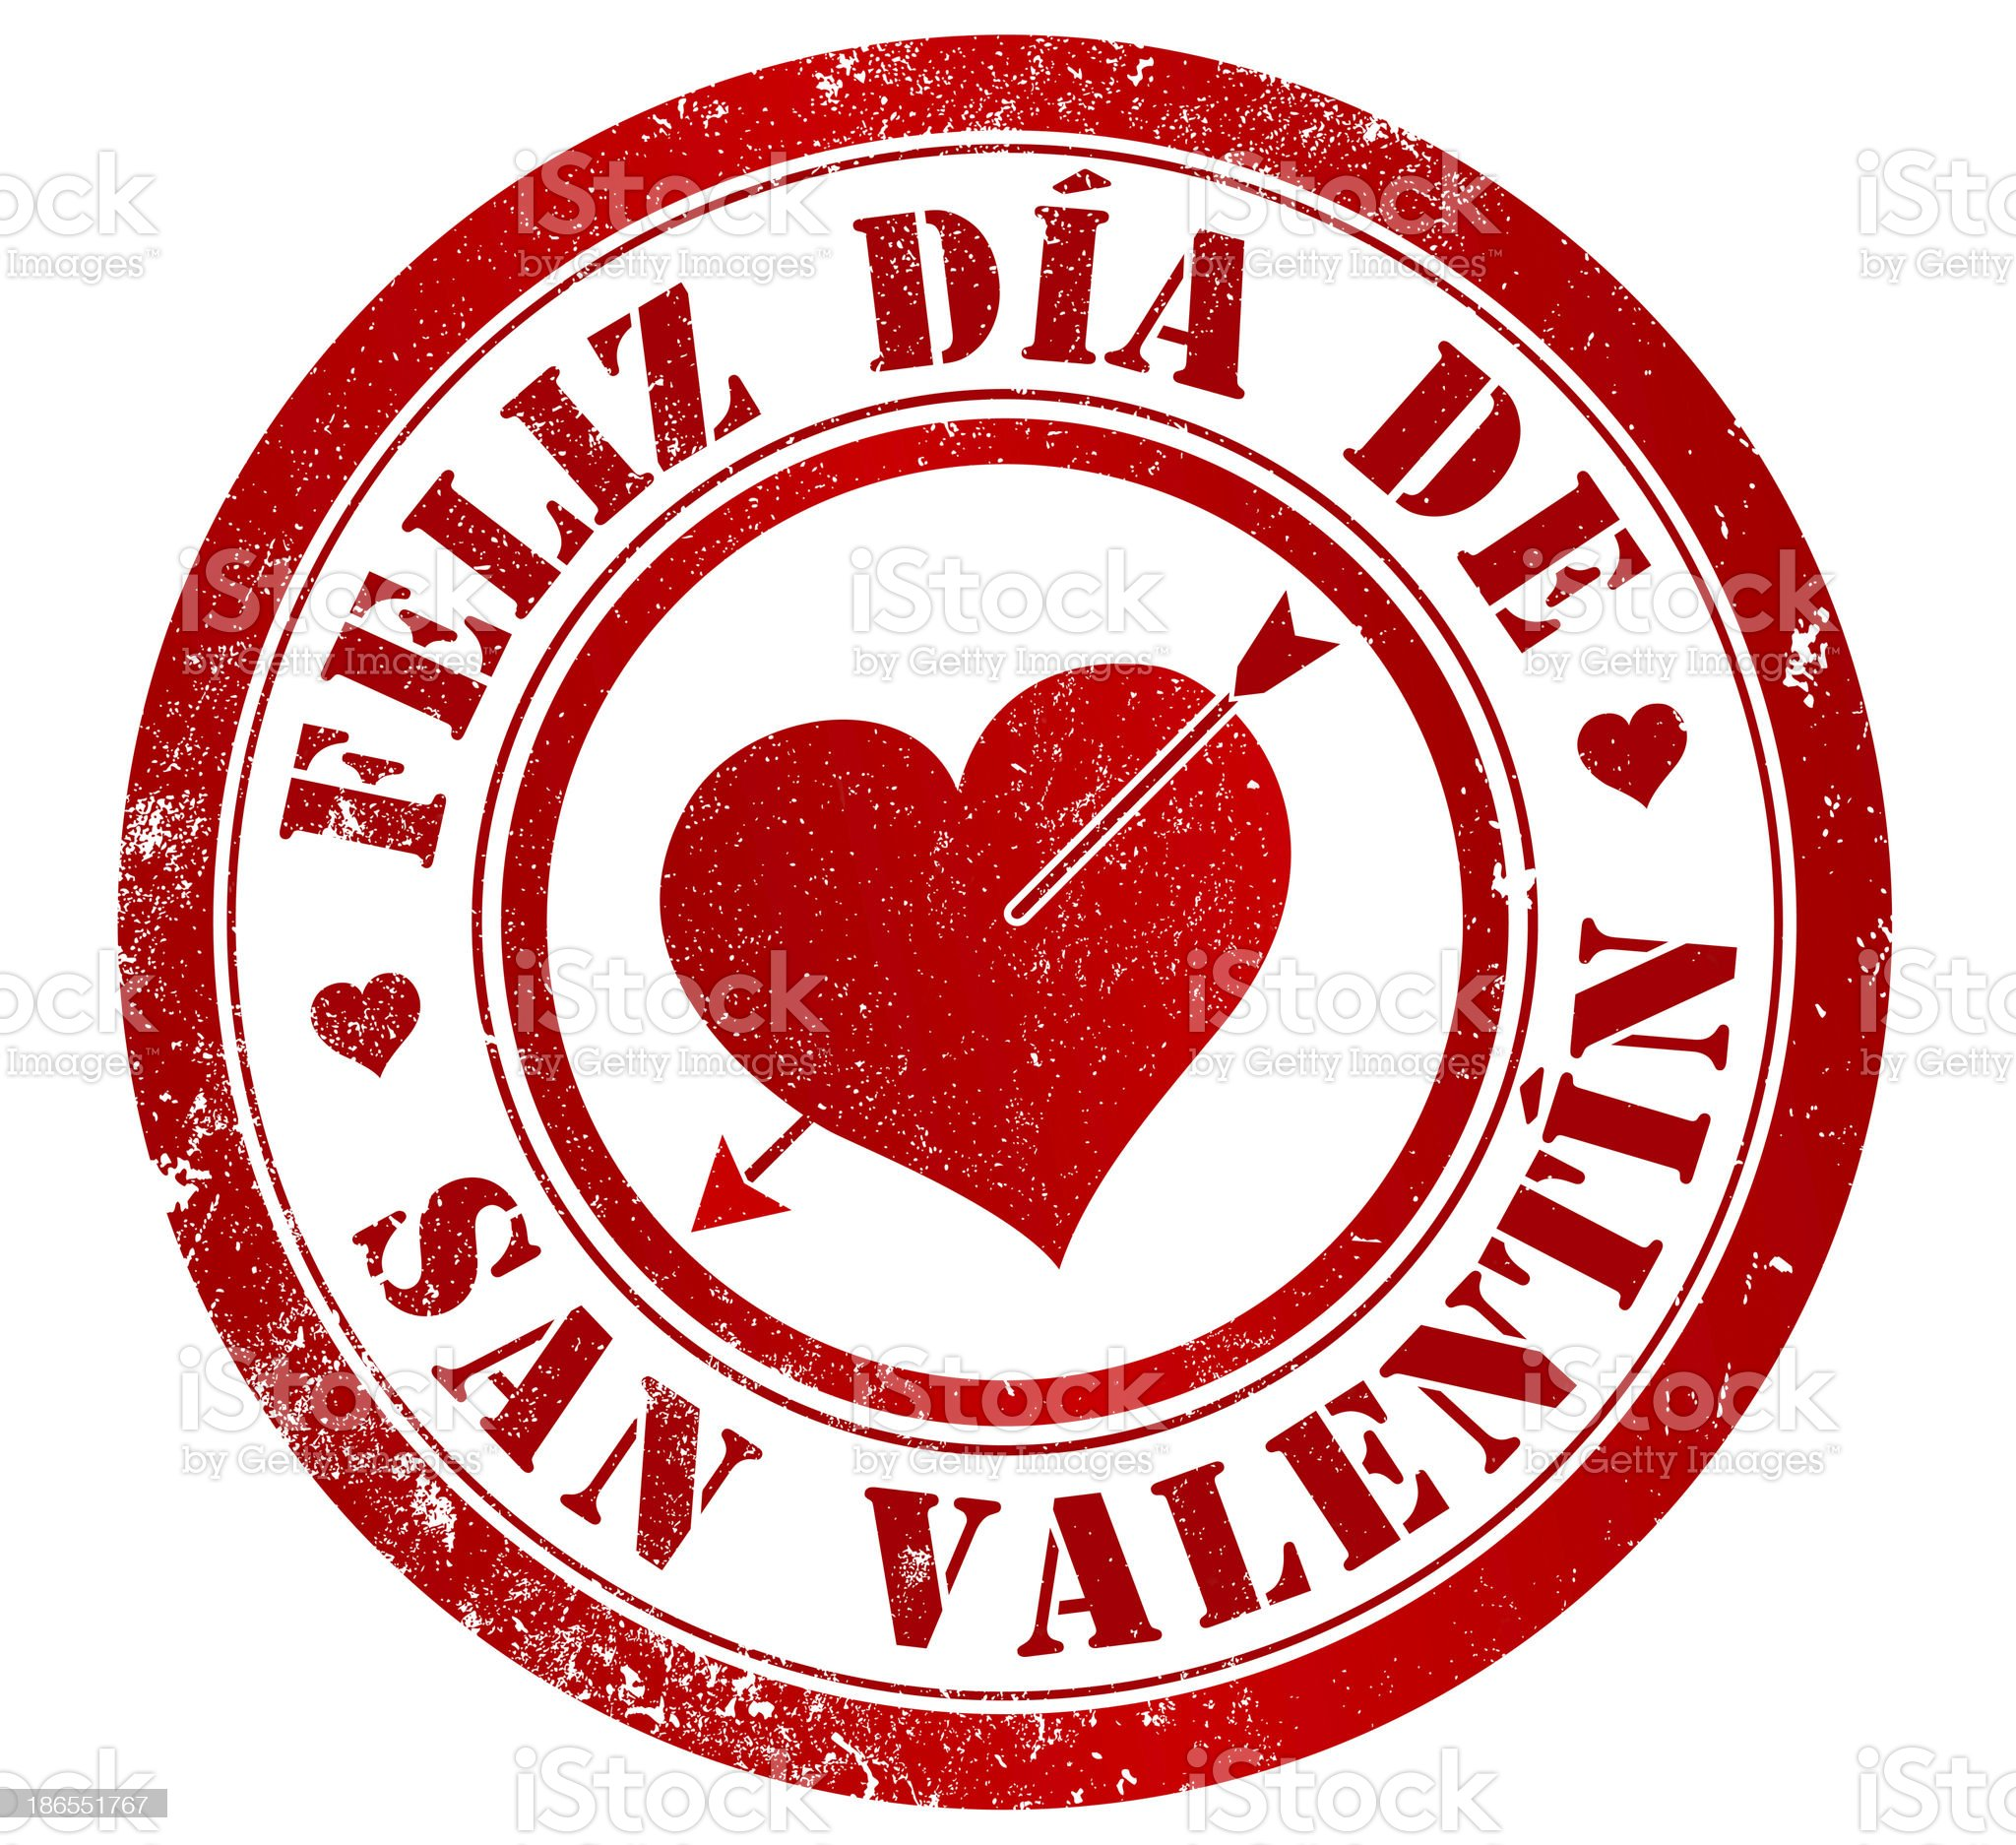 happy valentine's day stamp royalty-free stock vector art